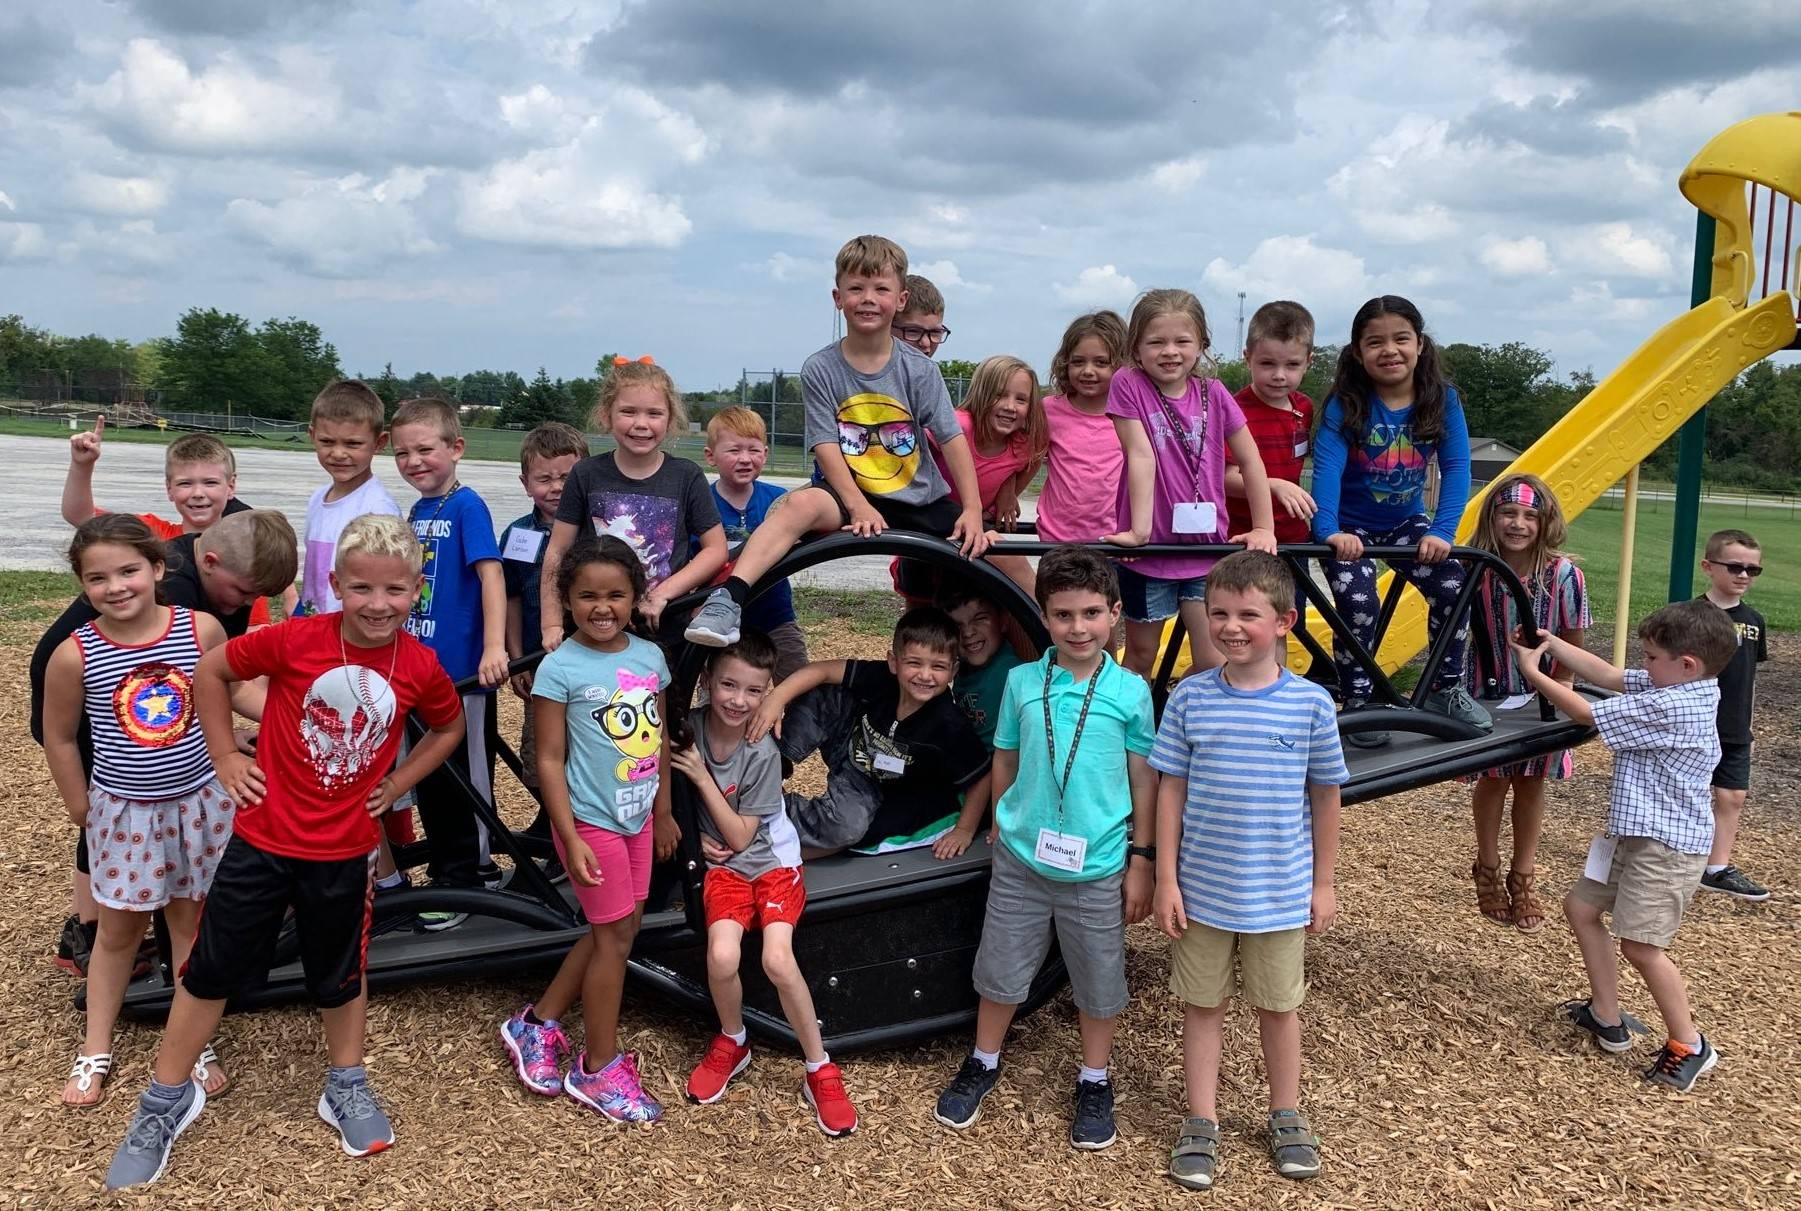 Munson Elementary students at Recess - Fall 2019